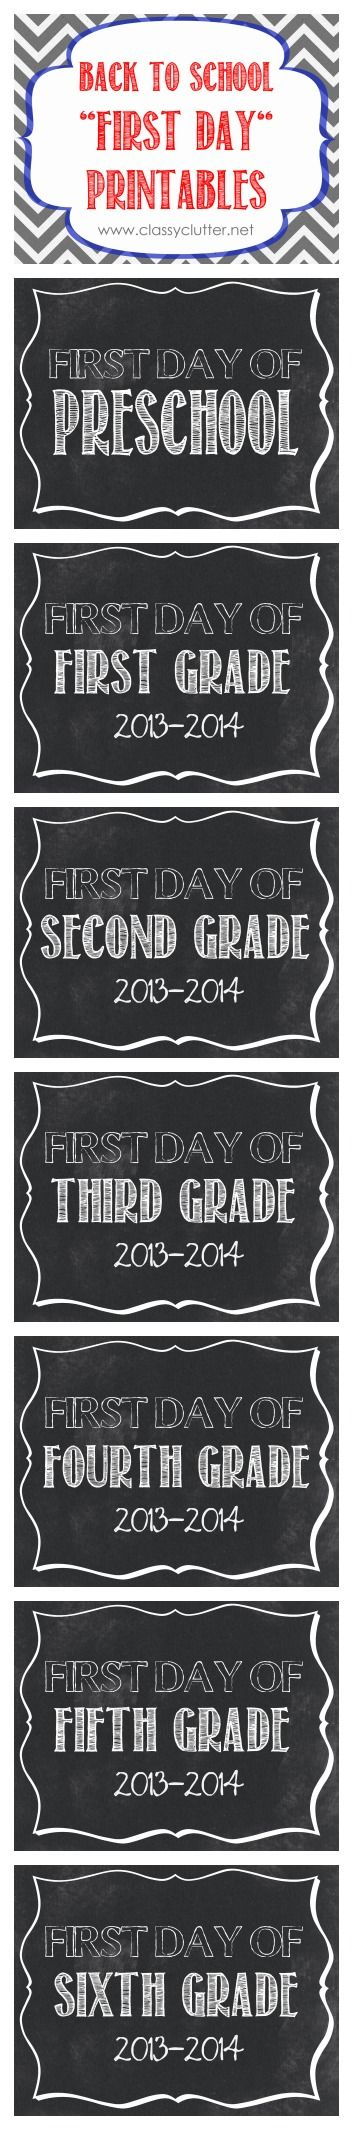 First Day jordan and hare Day mid printables  Preschool   th First   Of lola FREE School of School    Printables First Grade Day air